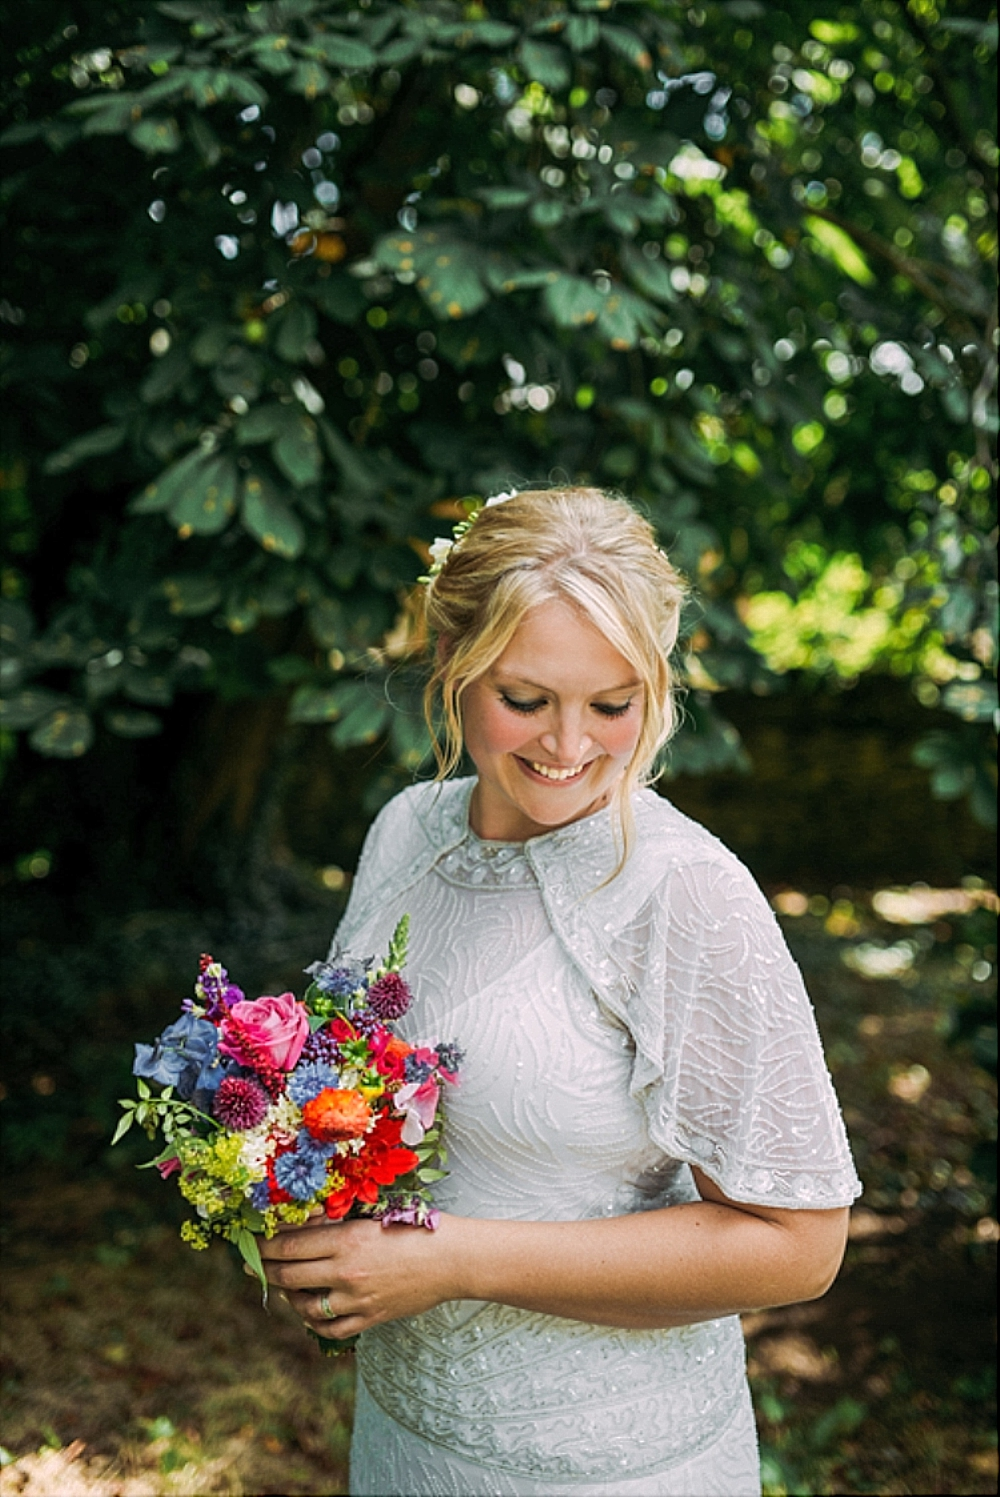 tetbury-wedding-photographer-holford-arms-bride-with-bouquet